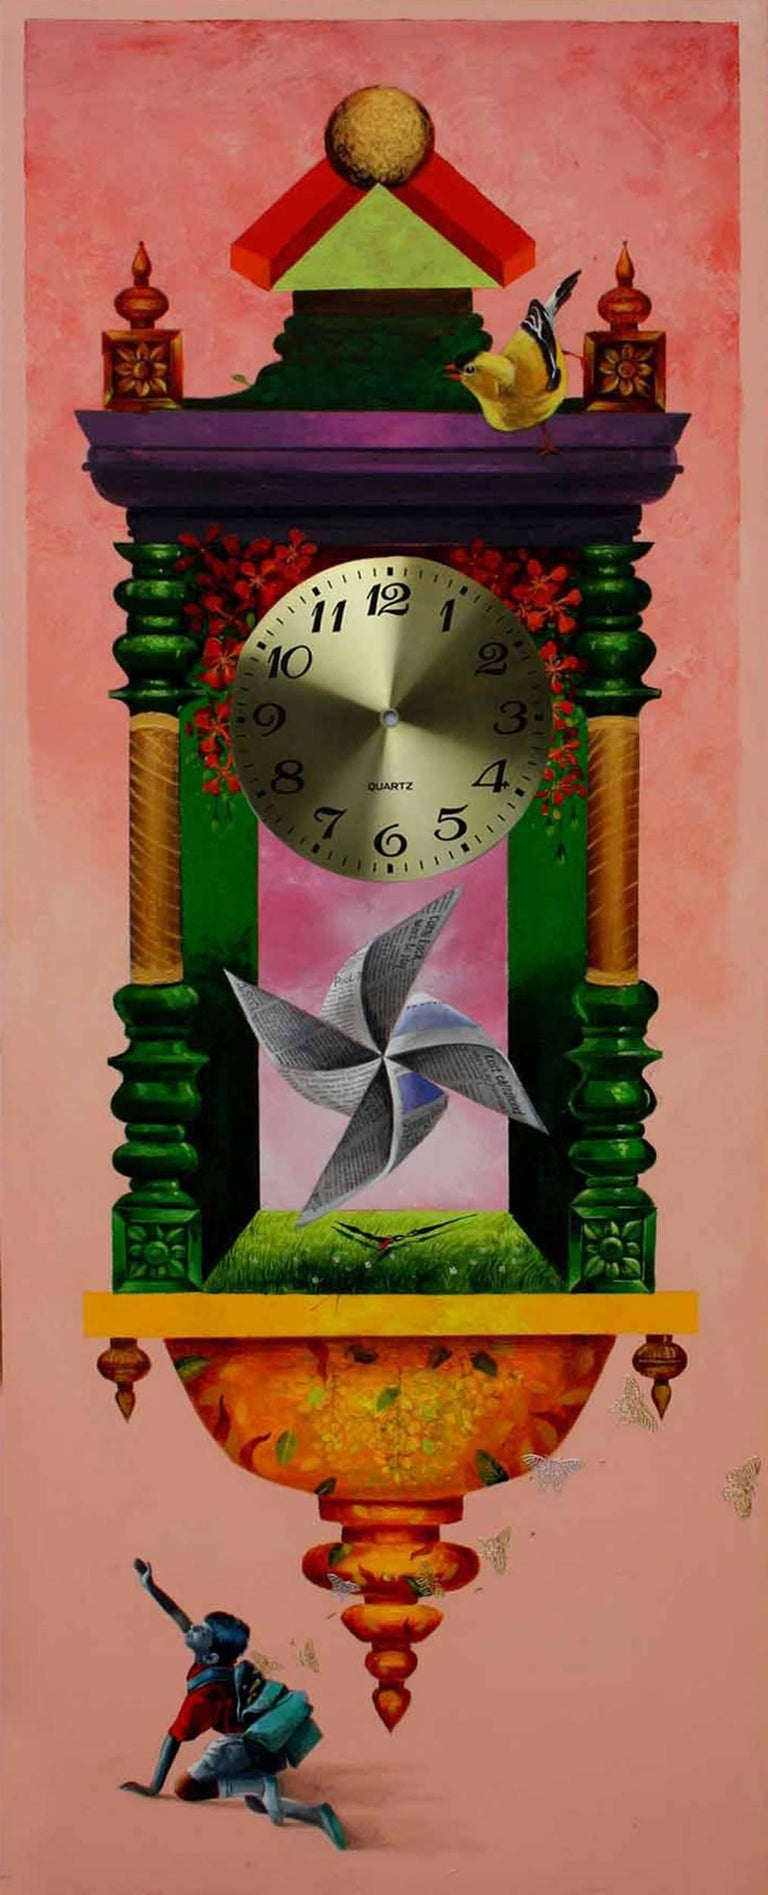 Longing Past IV : Wall clock, bright pink and metalic color in acrylic on canvas